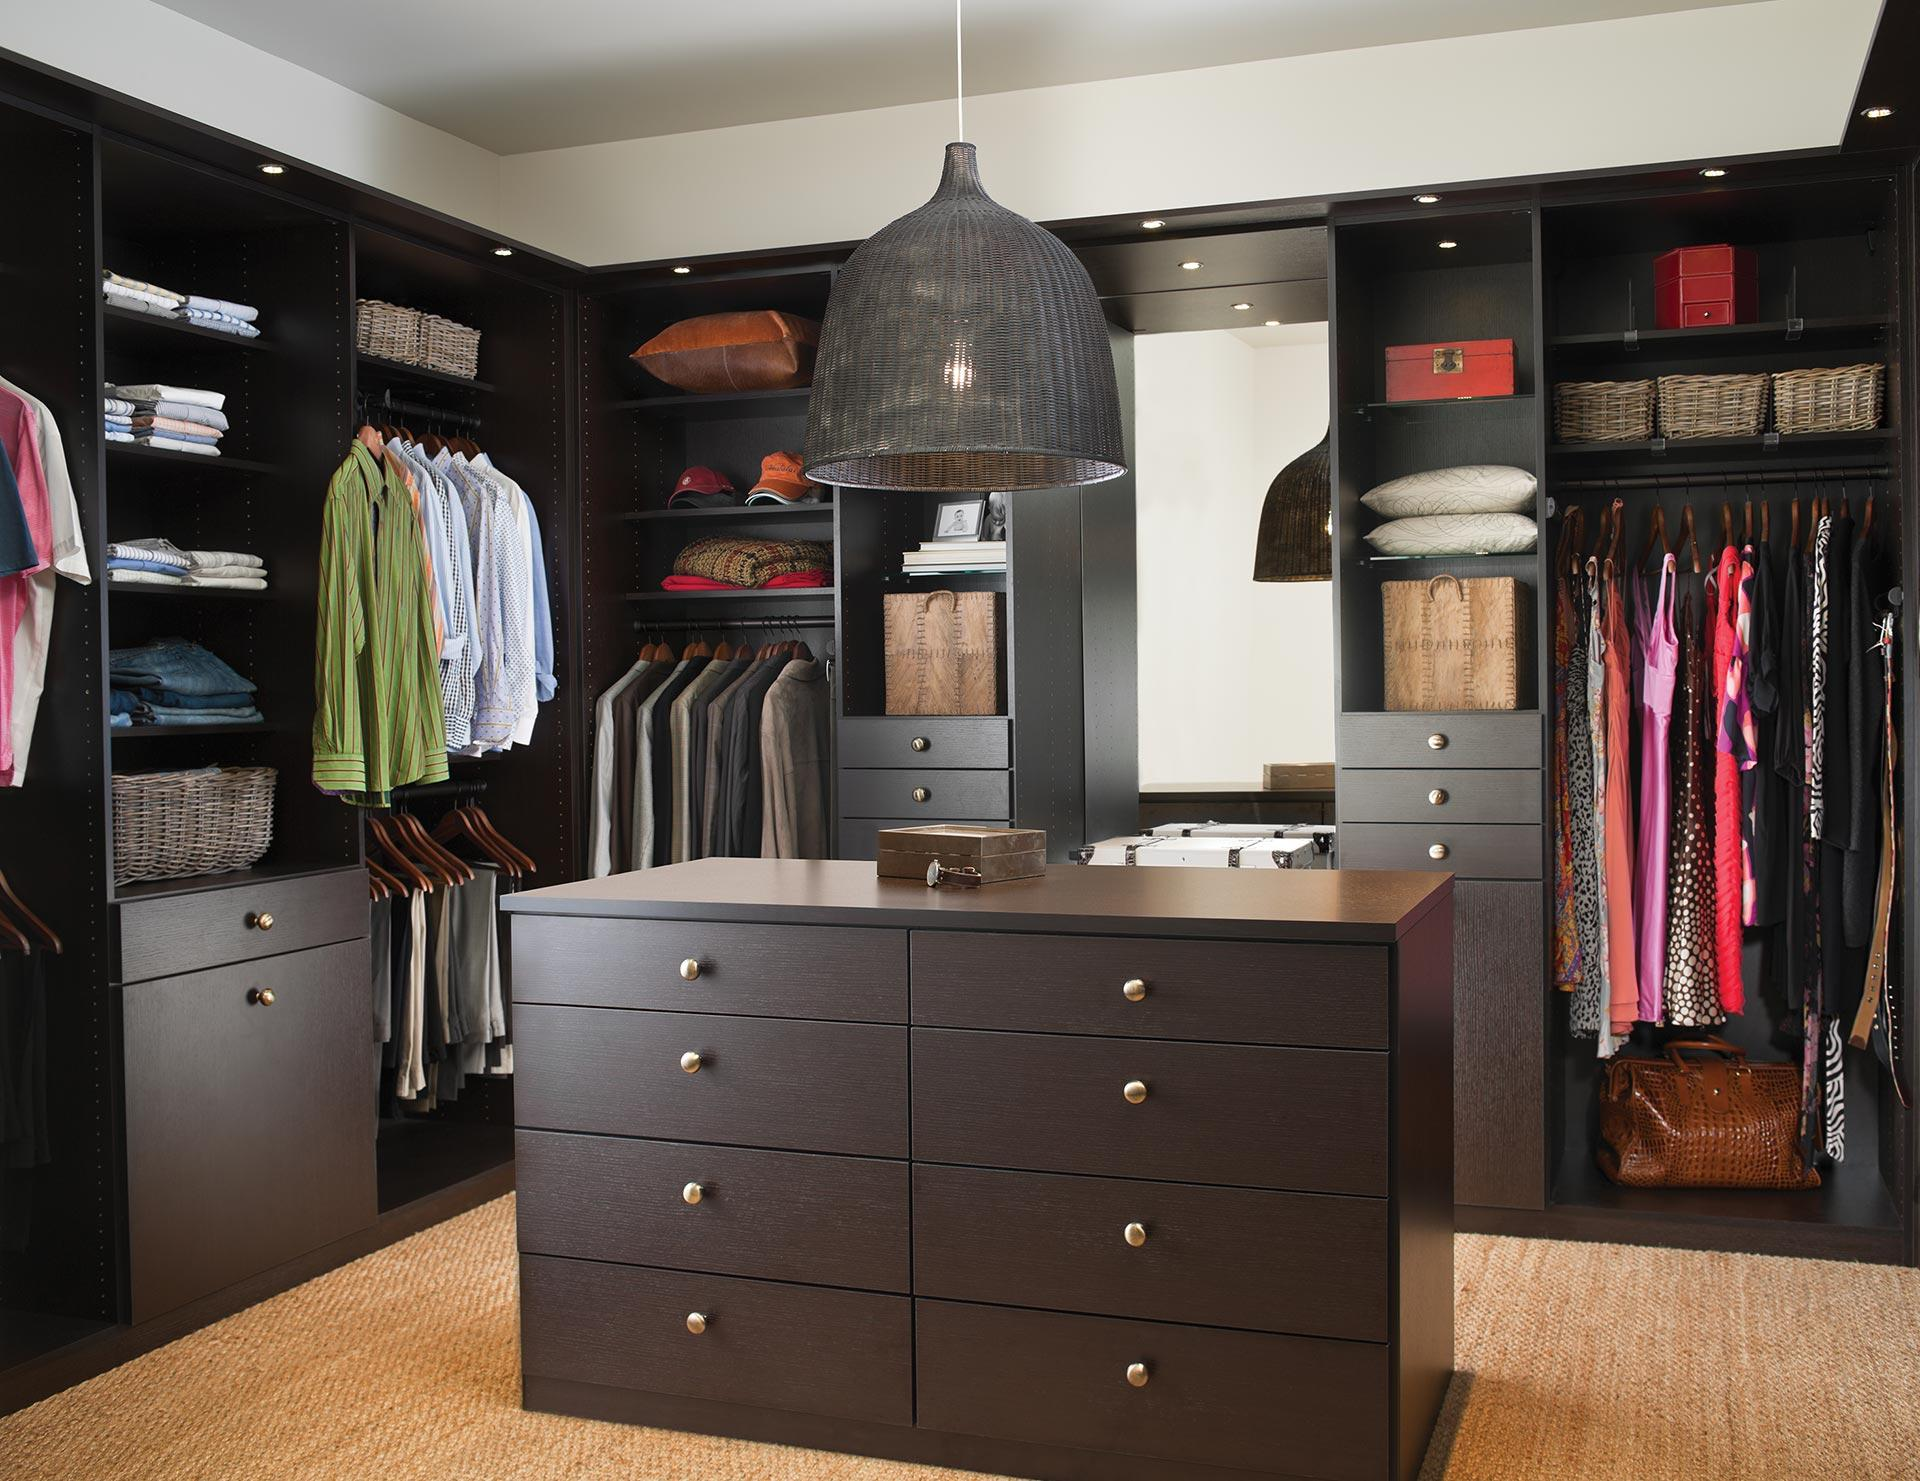 wardrobe tag case west archives noth in walkin closet walls stellar interior design unit corner built